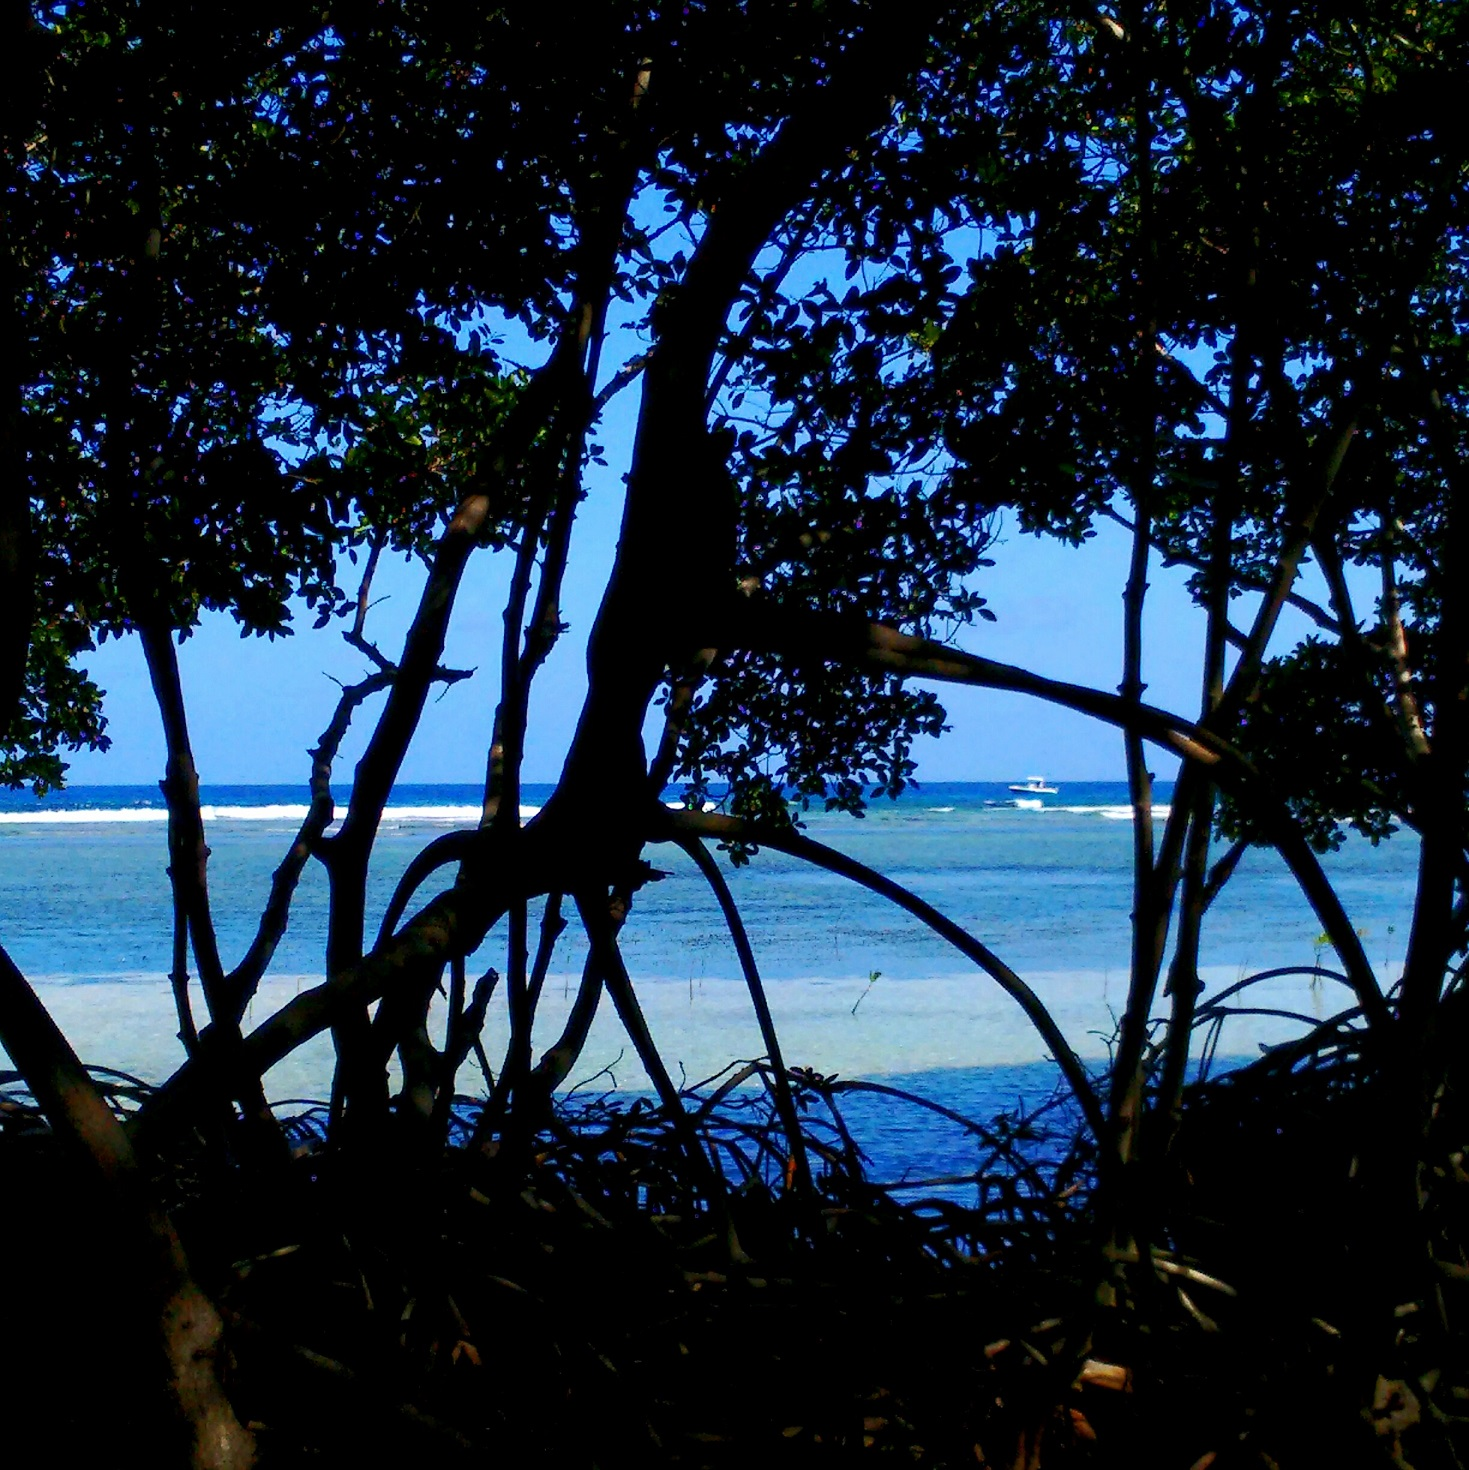 The mangroves hold the beaches in place and provide a crucial nursery for marine wildlife